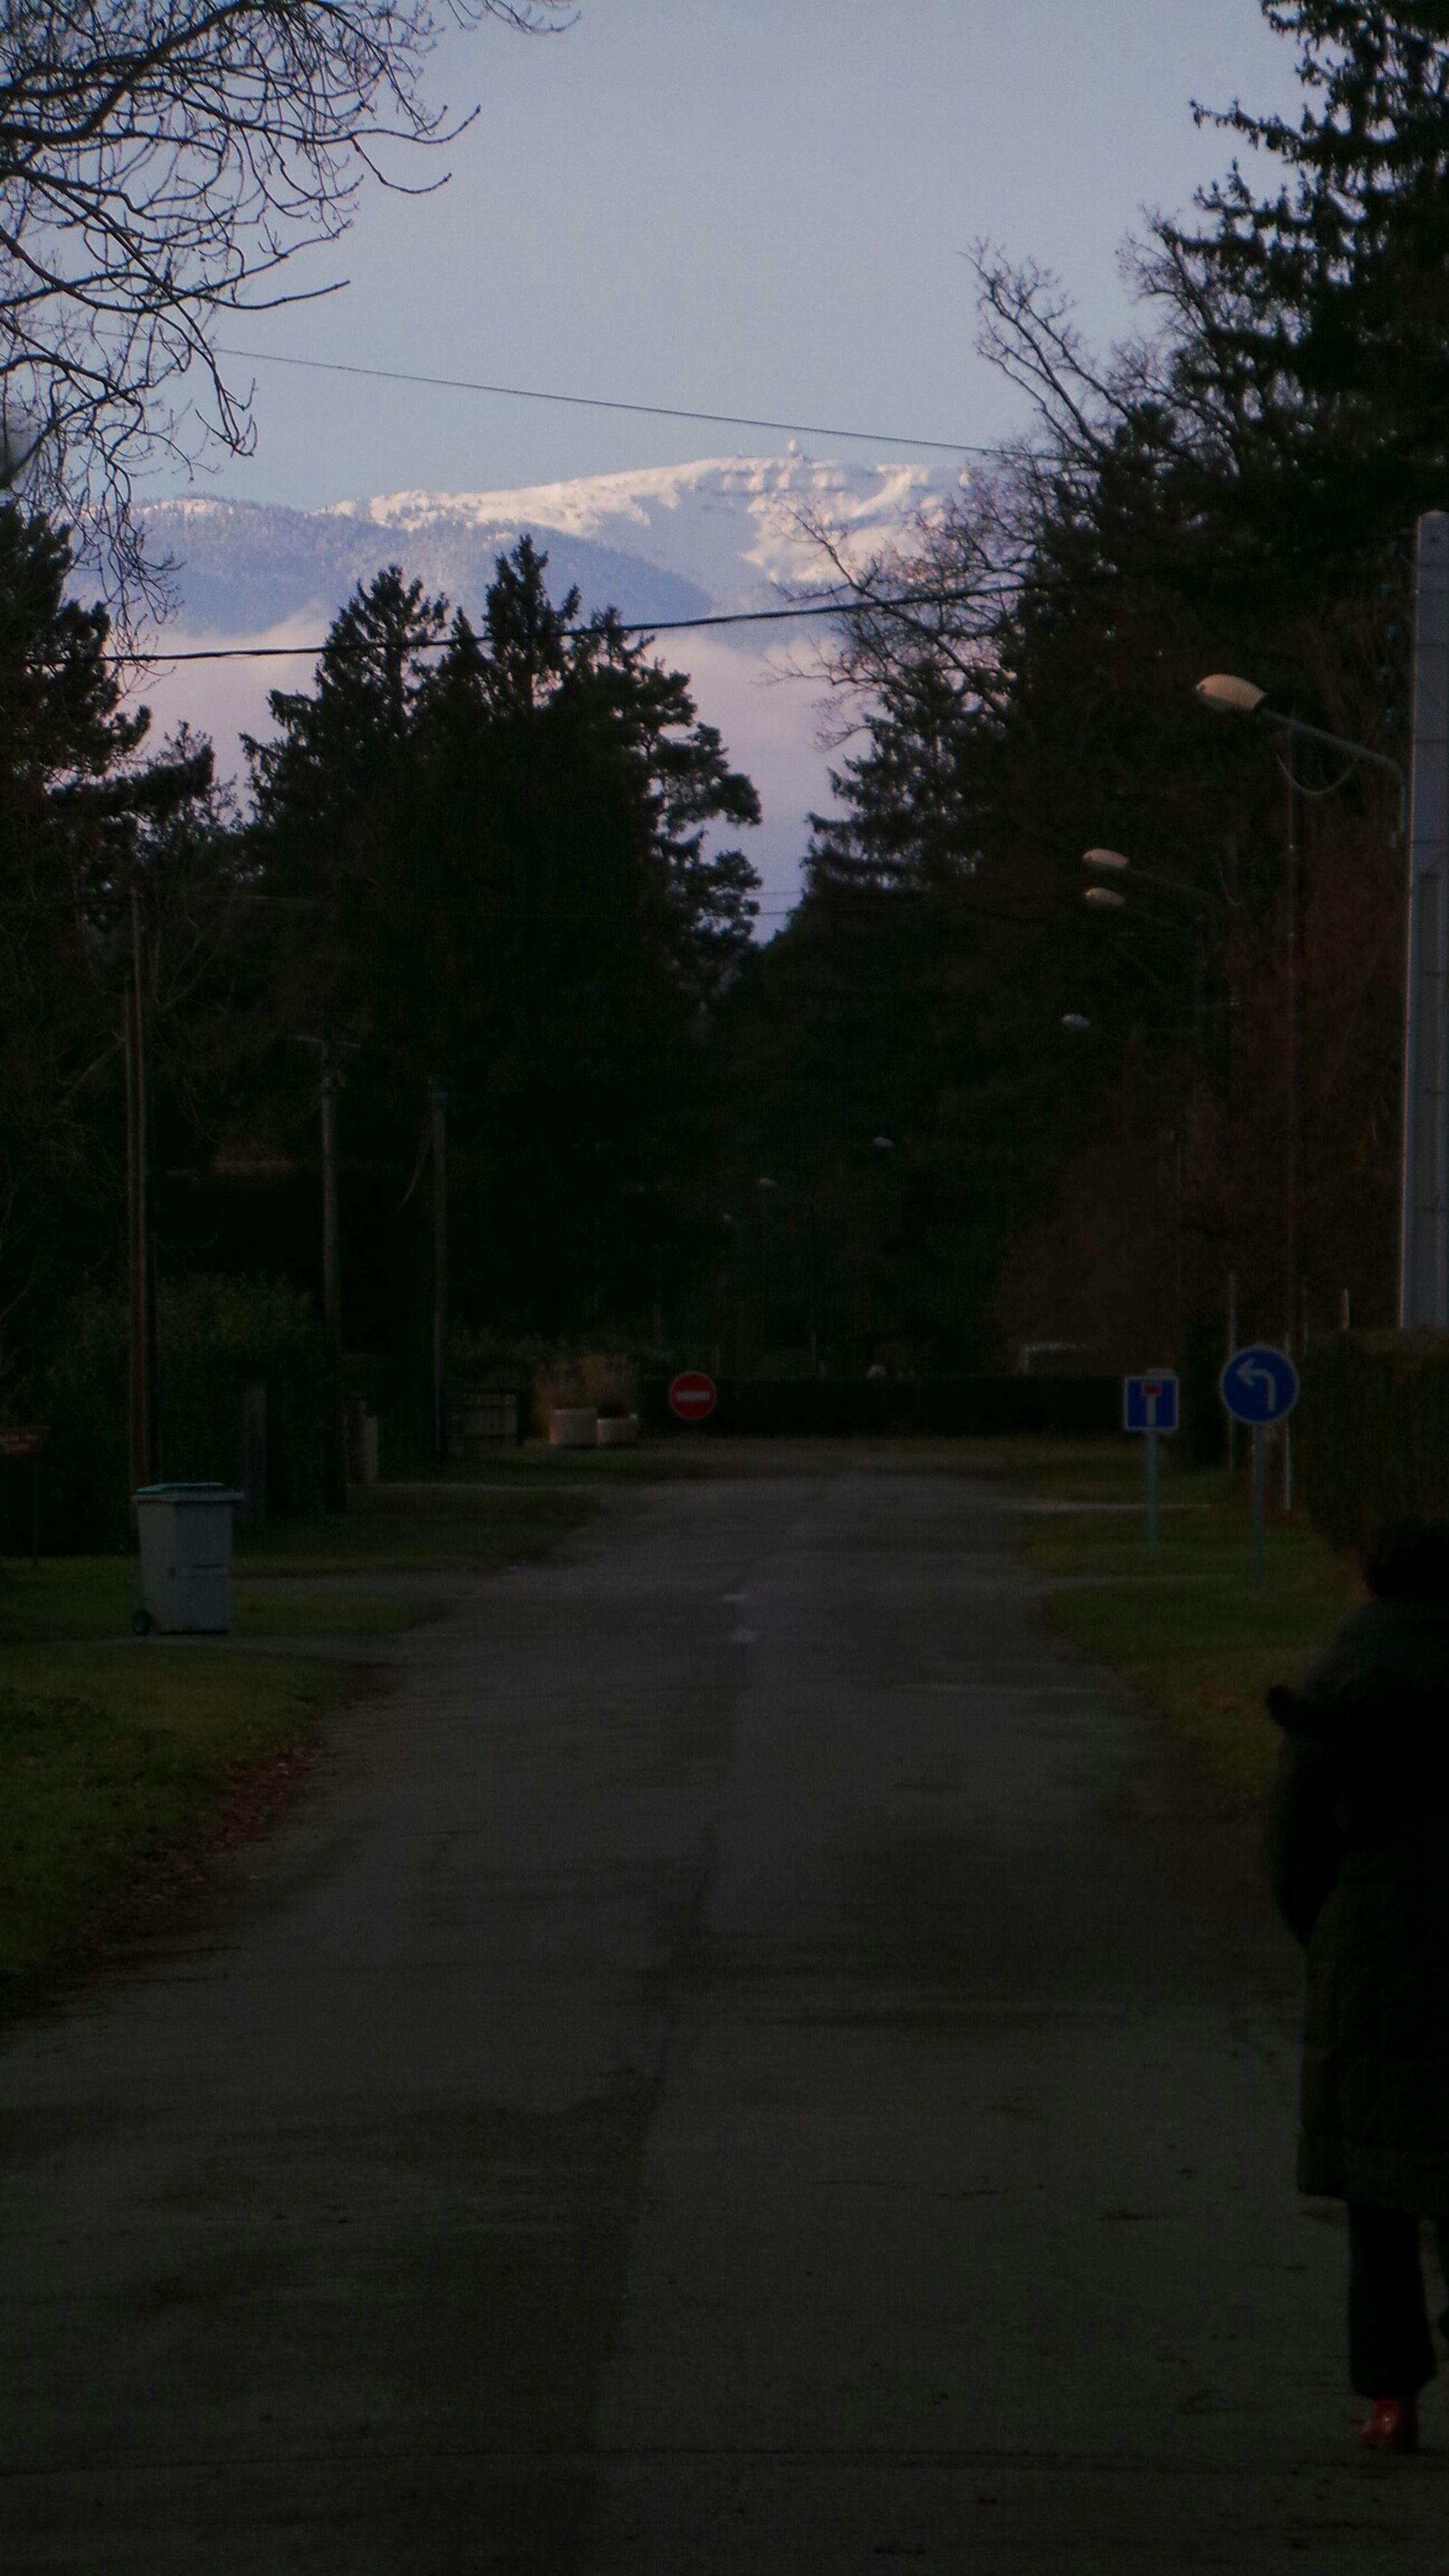 tree, men, lifestyles, the way forward, transportation, street, sky, road, leisure activity, walking, person, street light, rear view, building exterior, full length, outdoors, dusk, unrecognizable person